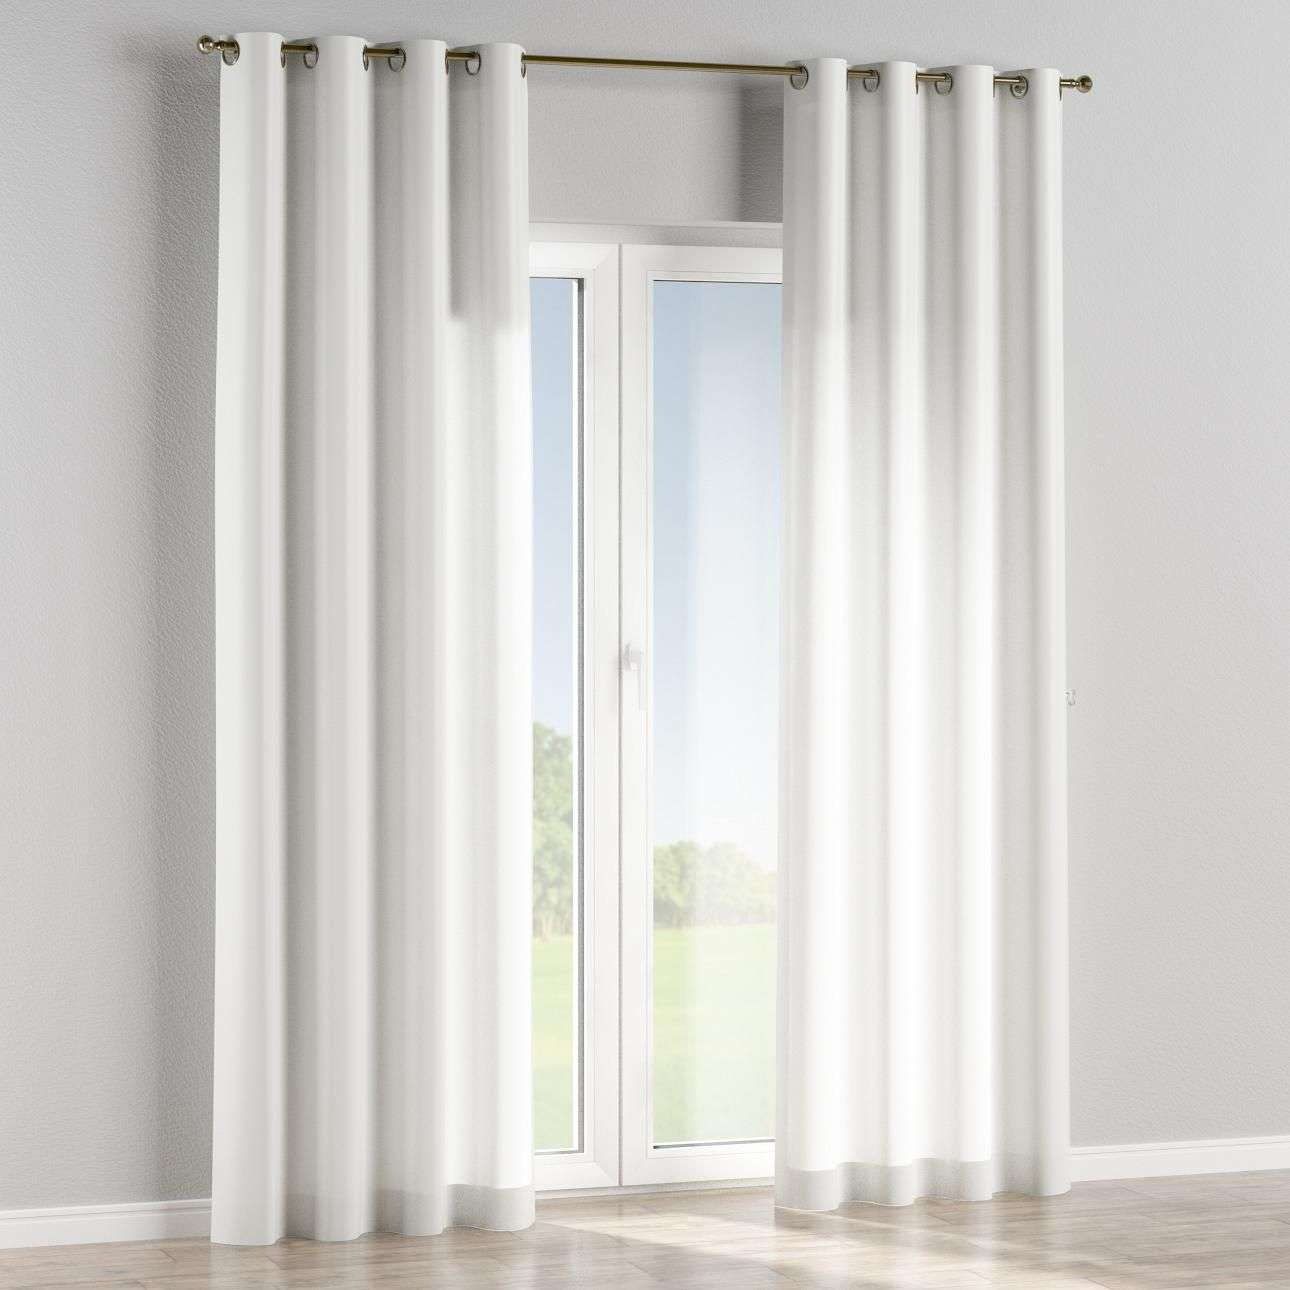 Eyelet curtains in collection Flowers, fabric: 311-09